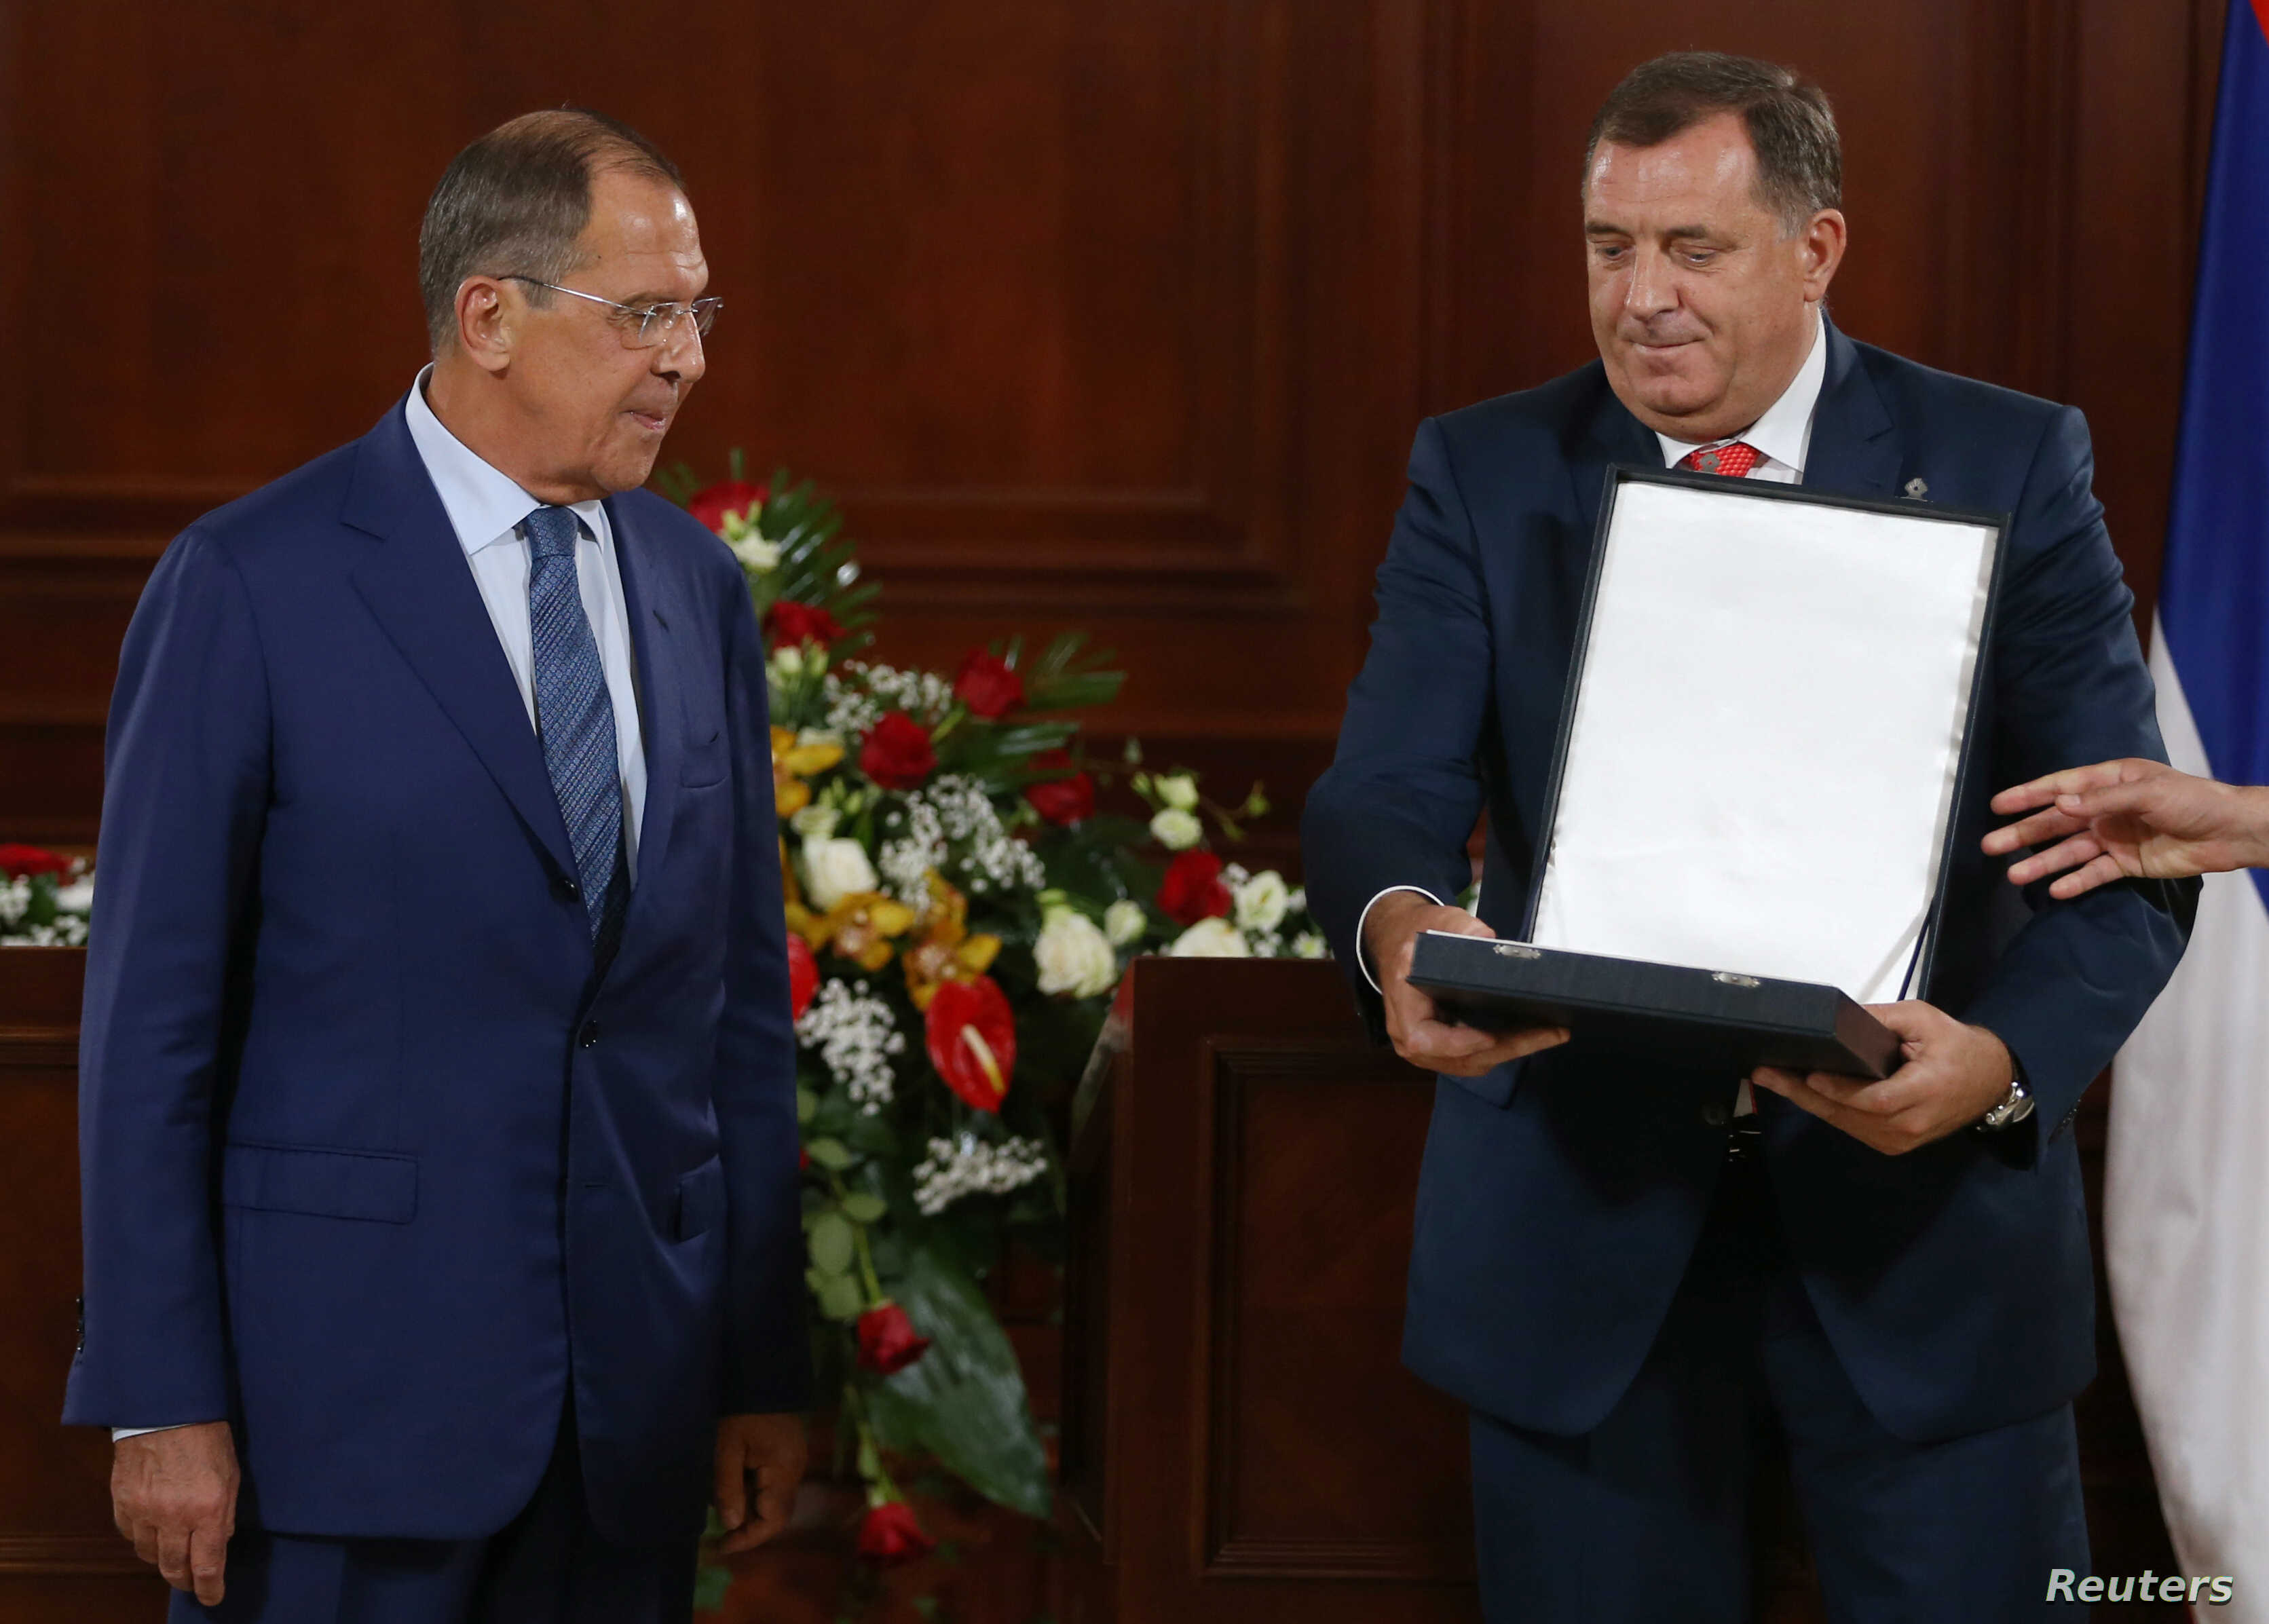 President of the Republika Srpska, Milorad Dodik awards Russia's Foreign Minister Sergei Lavrov with  Order of the Republika Srpska, after their meeting in Banja Luka, Bosnia and Herzegovina, Sept. 21, 2018.